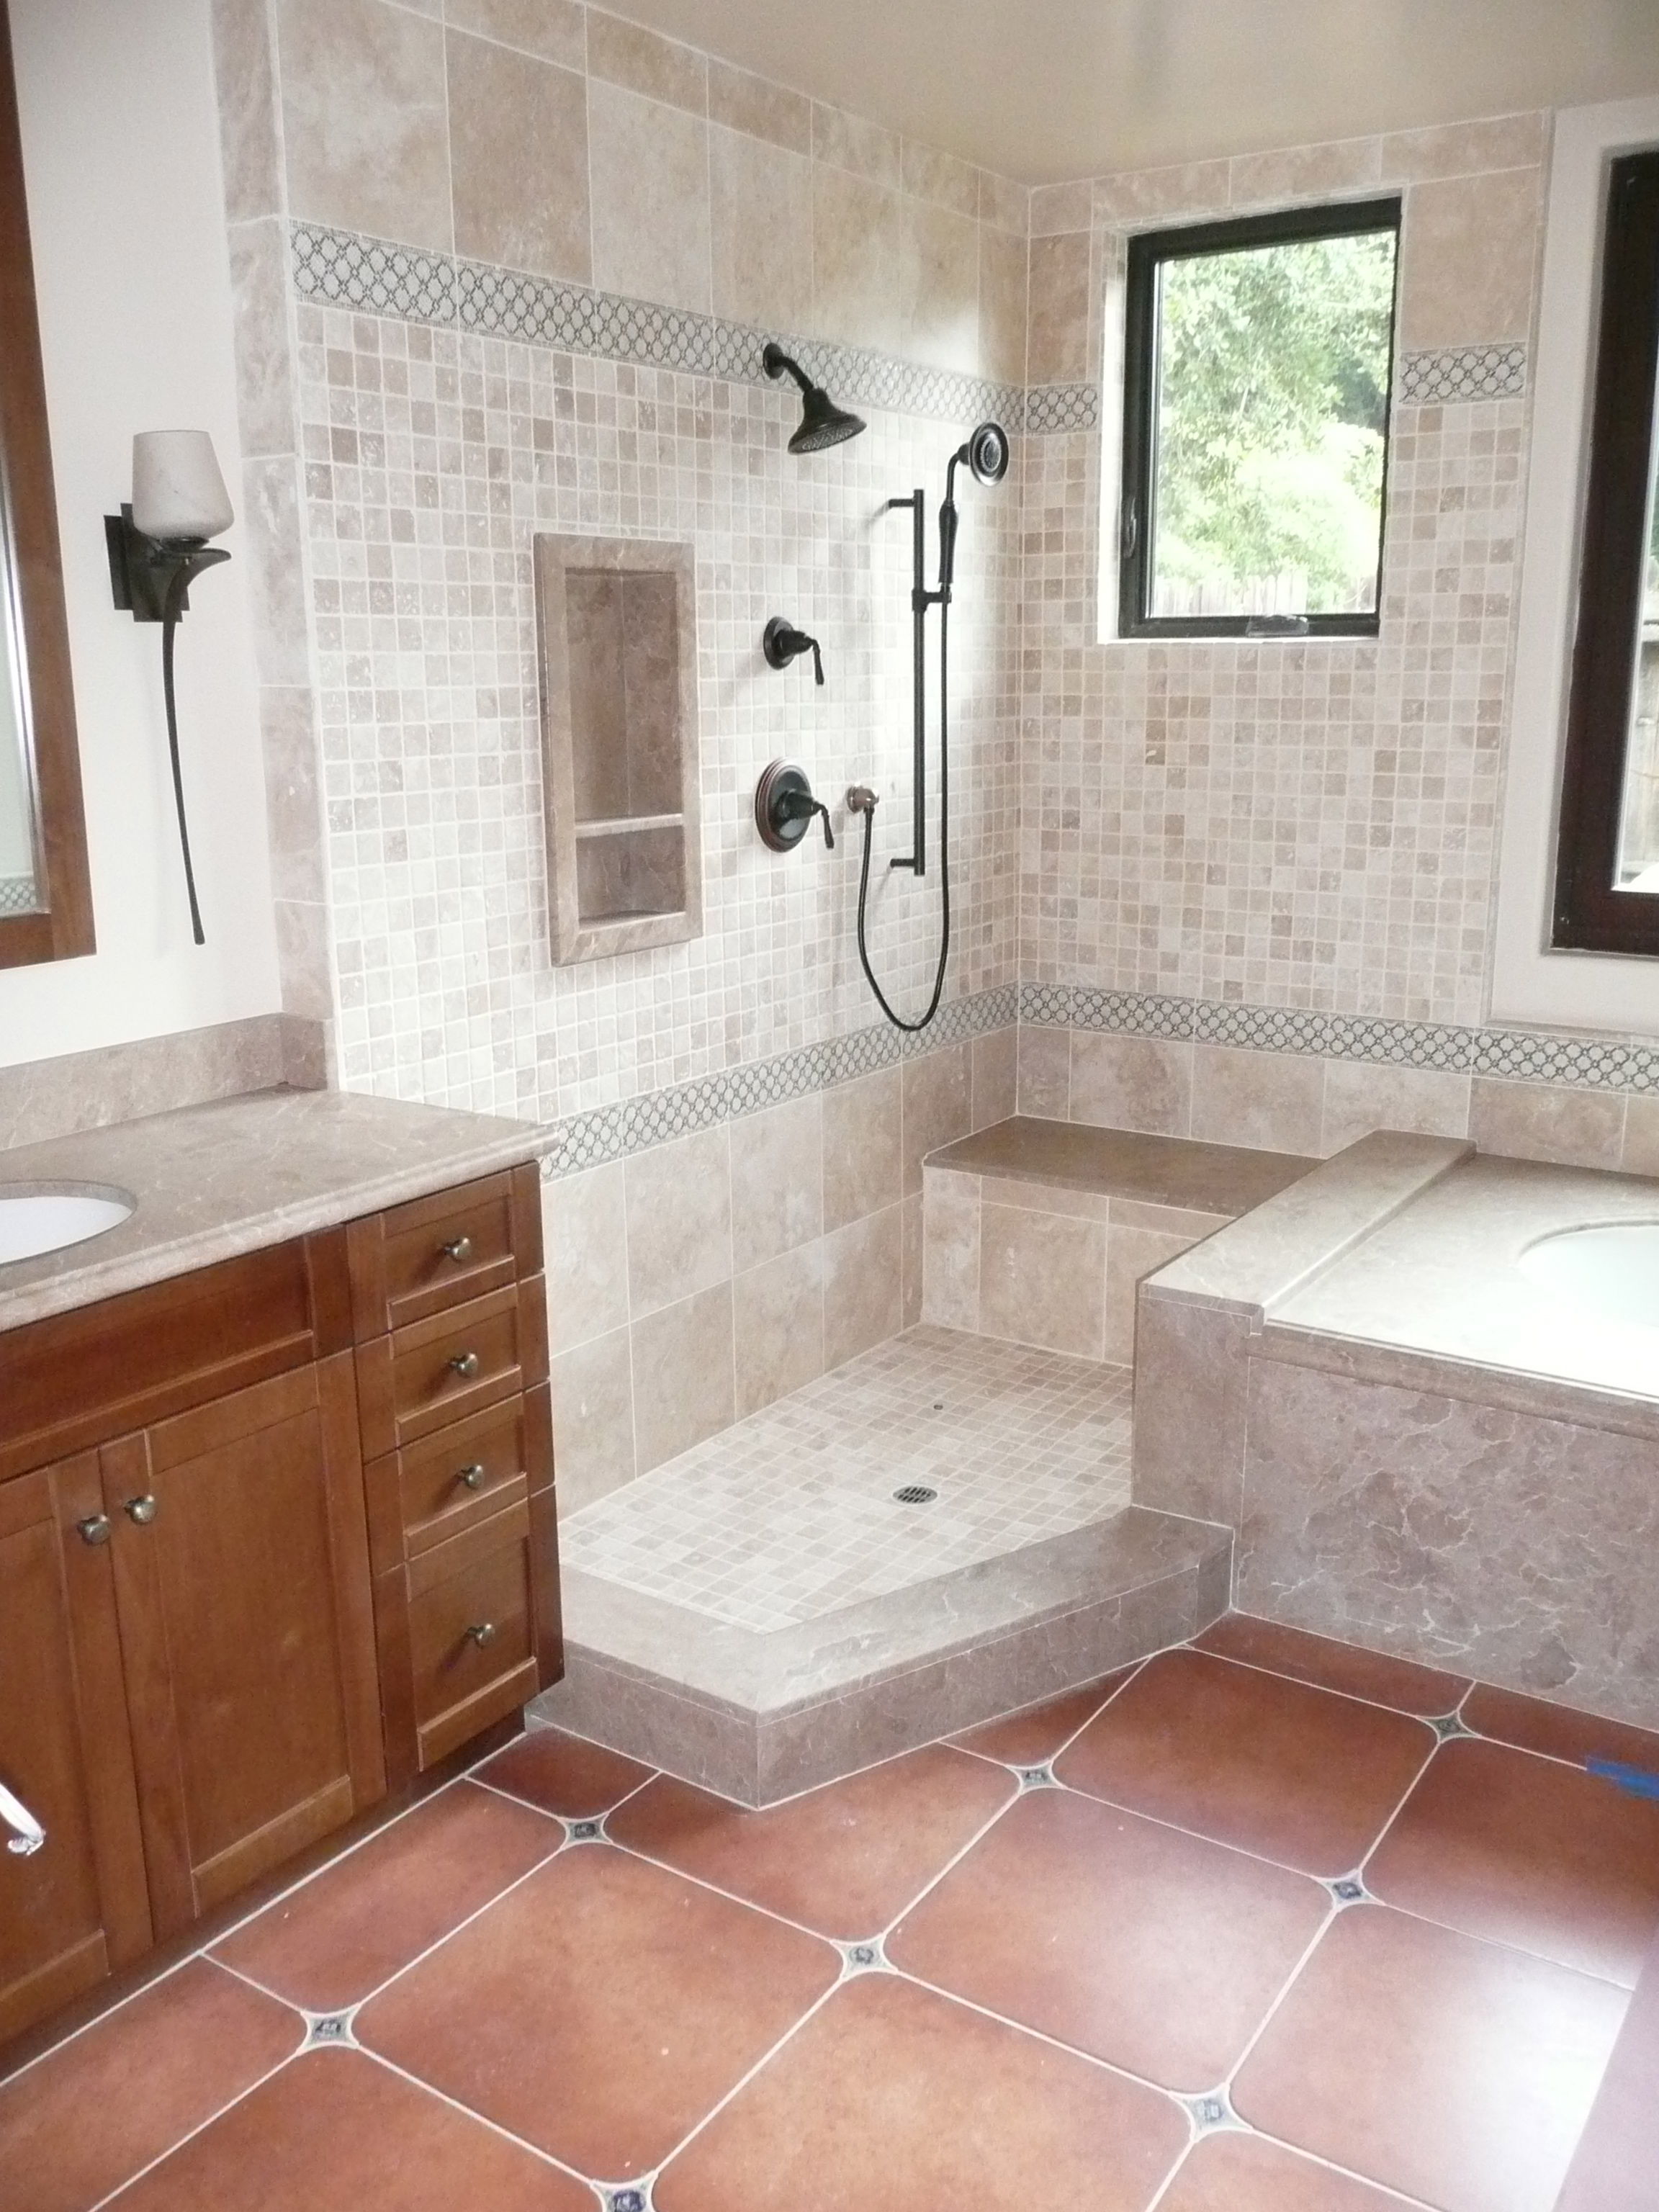 Eco housing and green remodel ideas looking at menlo Open master bathroom designs